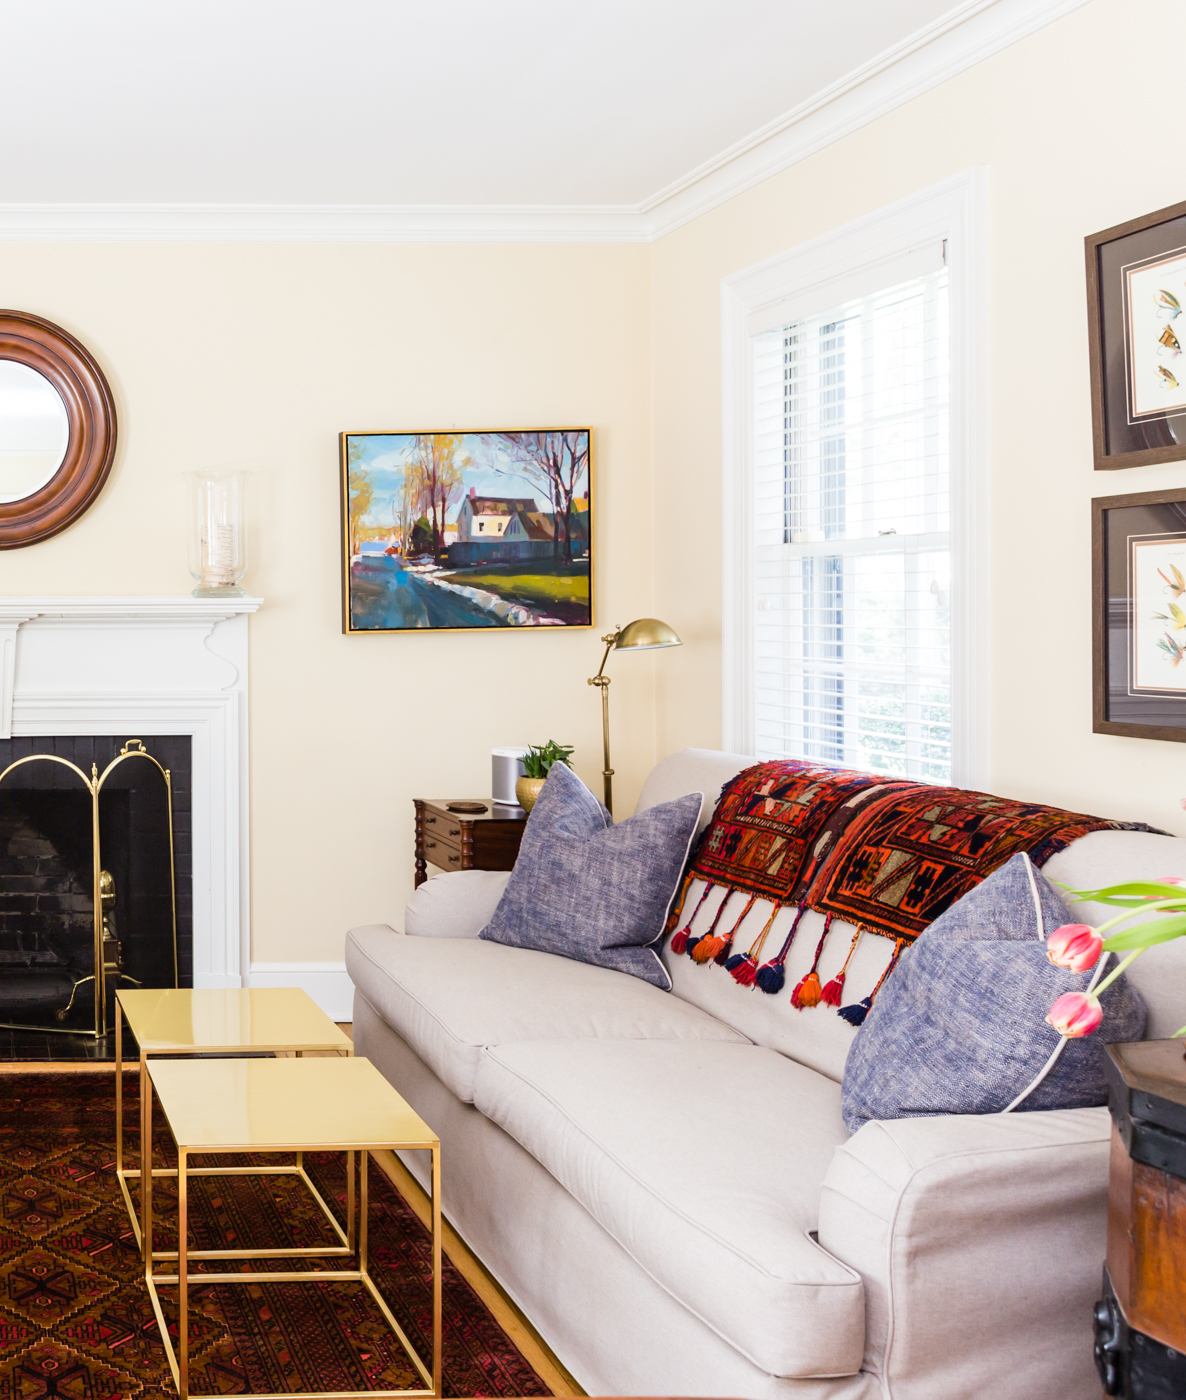 Home Tour: A Traditional Home with Bohemian Flair